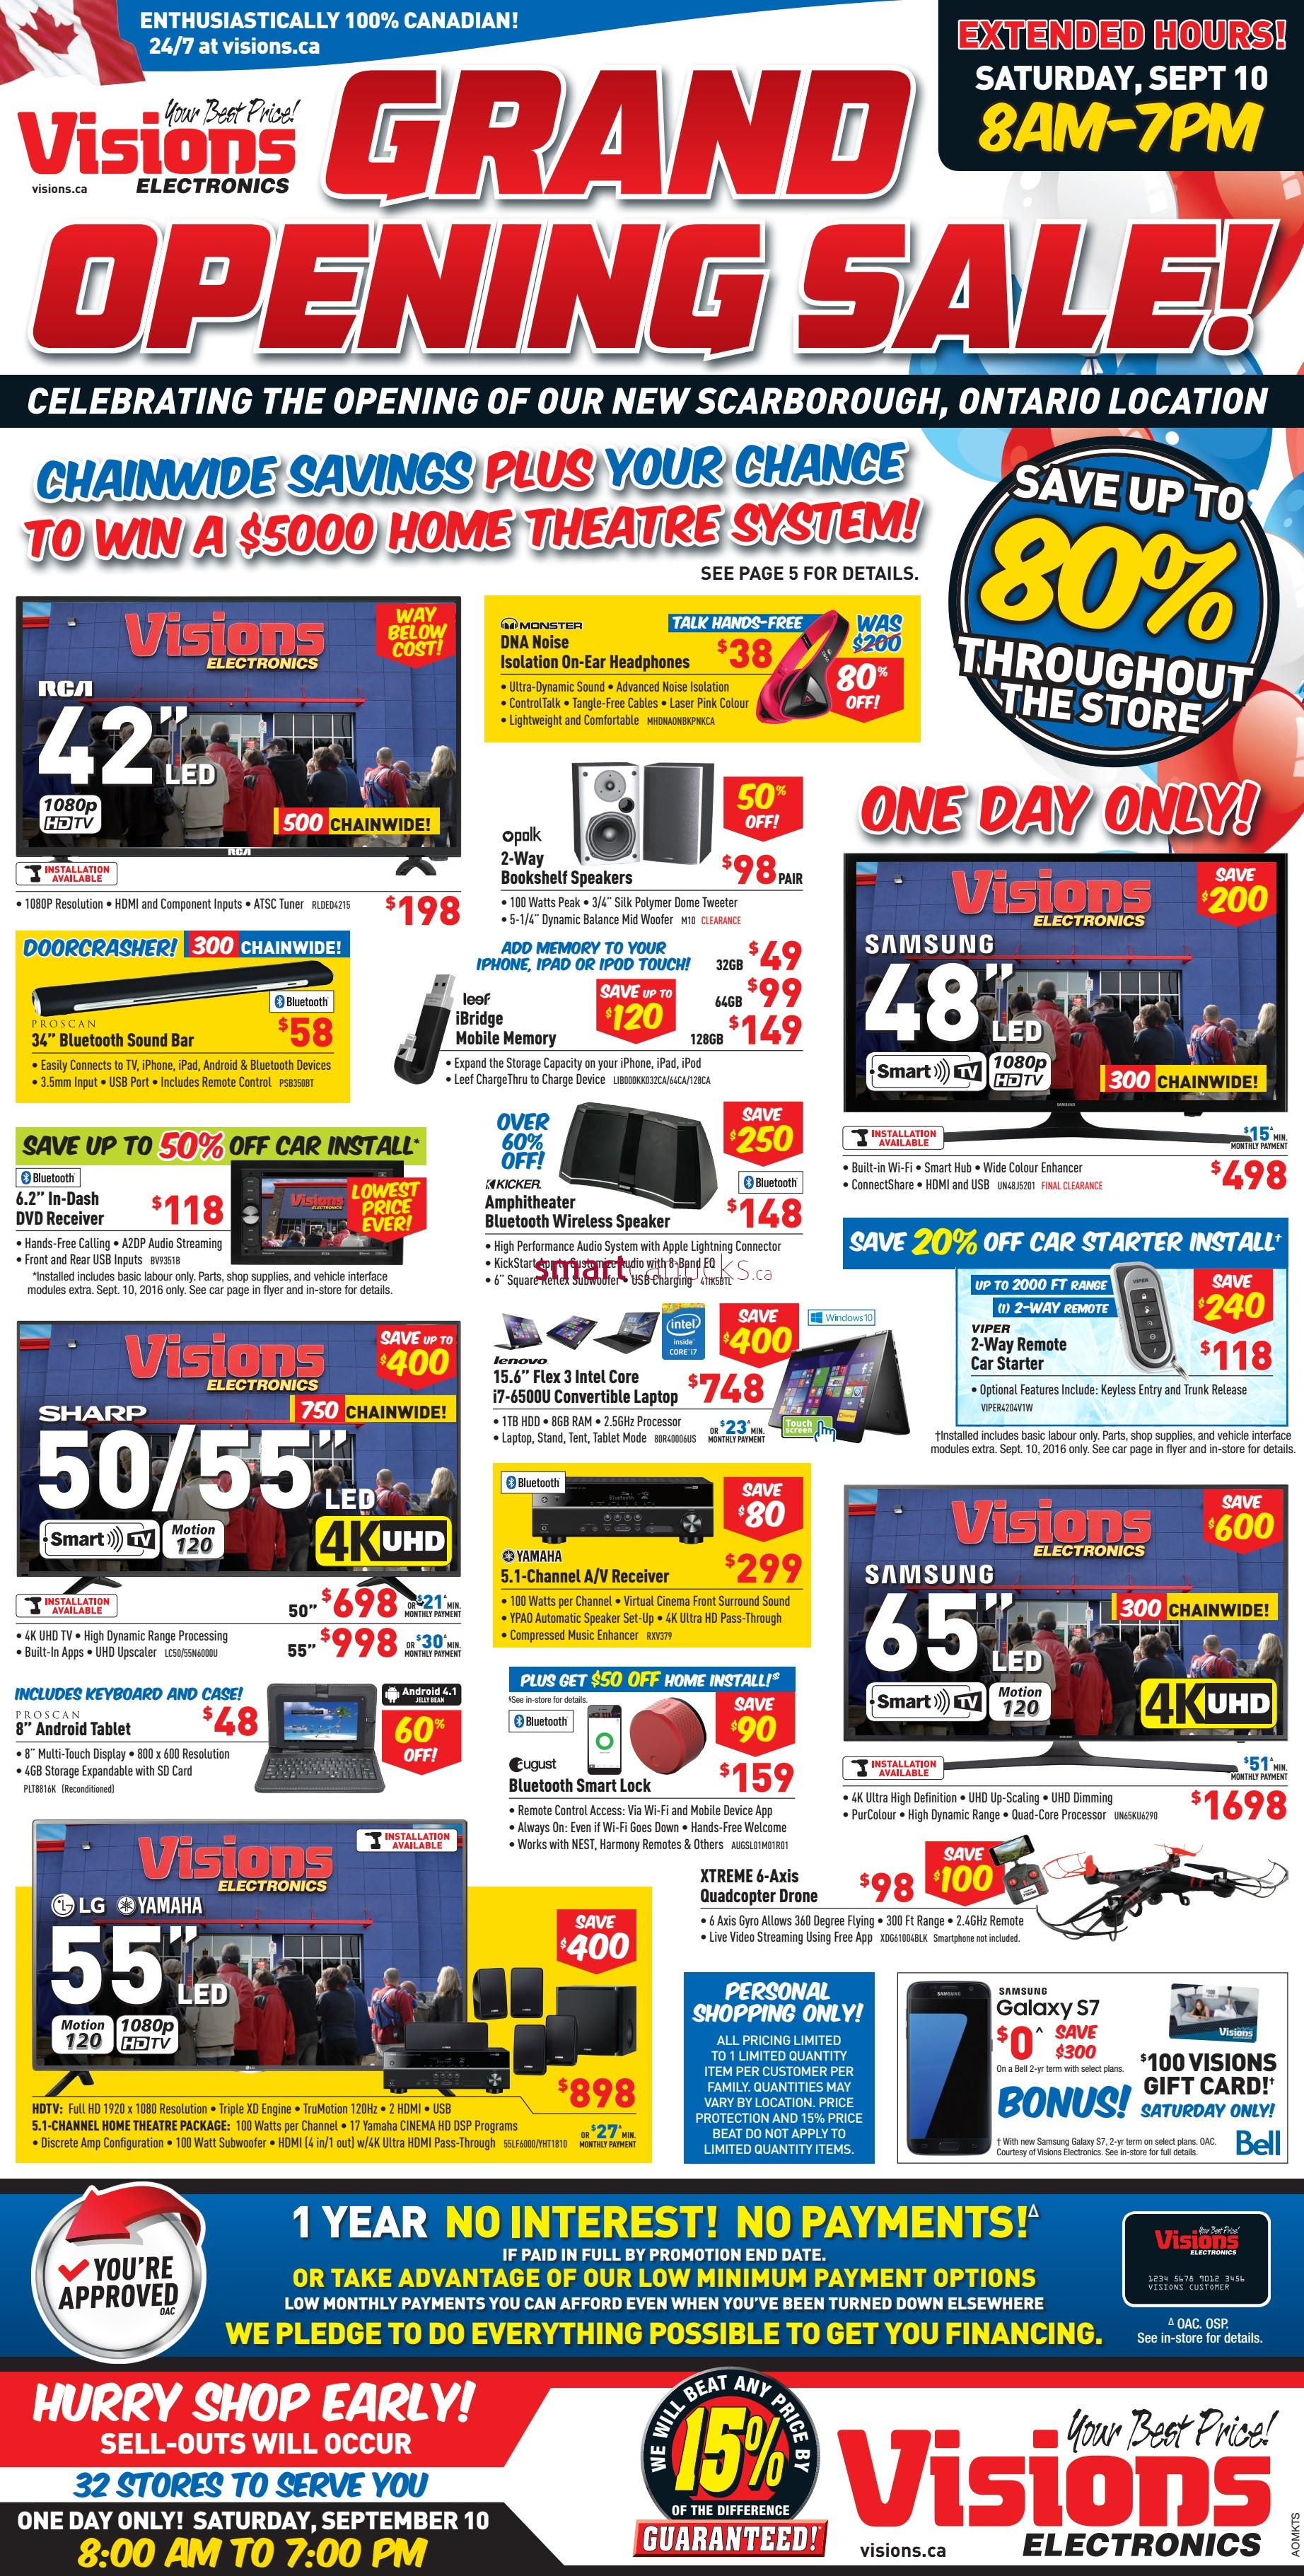 visions electronics grand opening sale flyer september 10